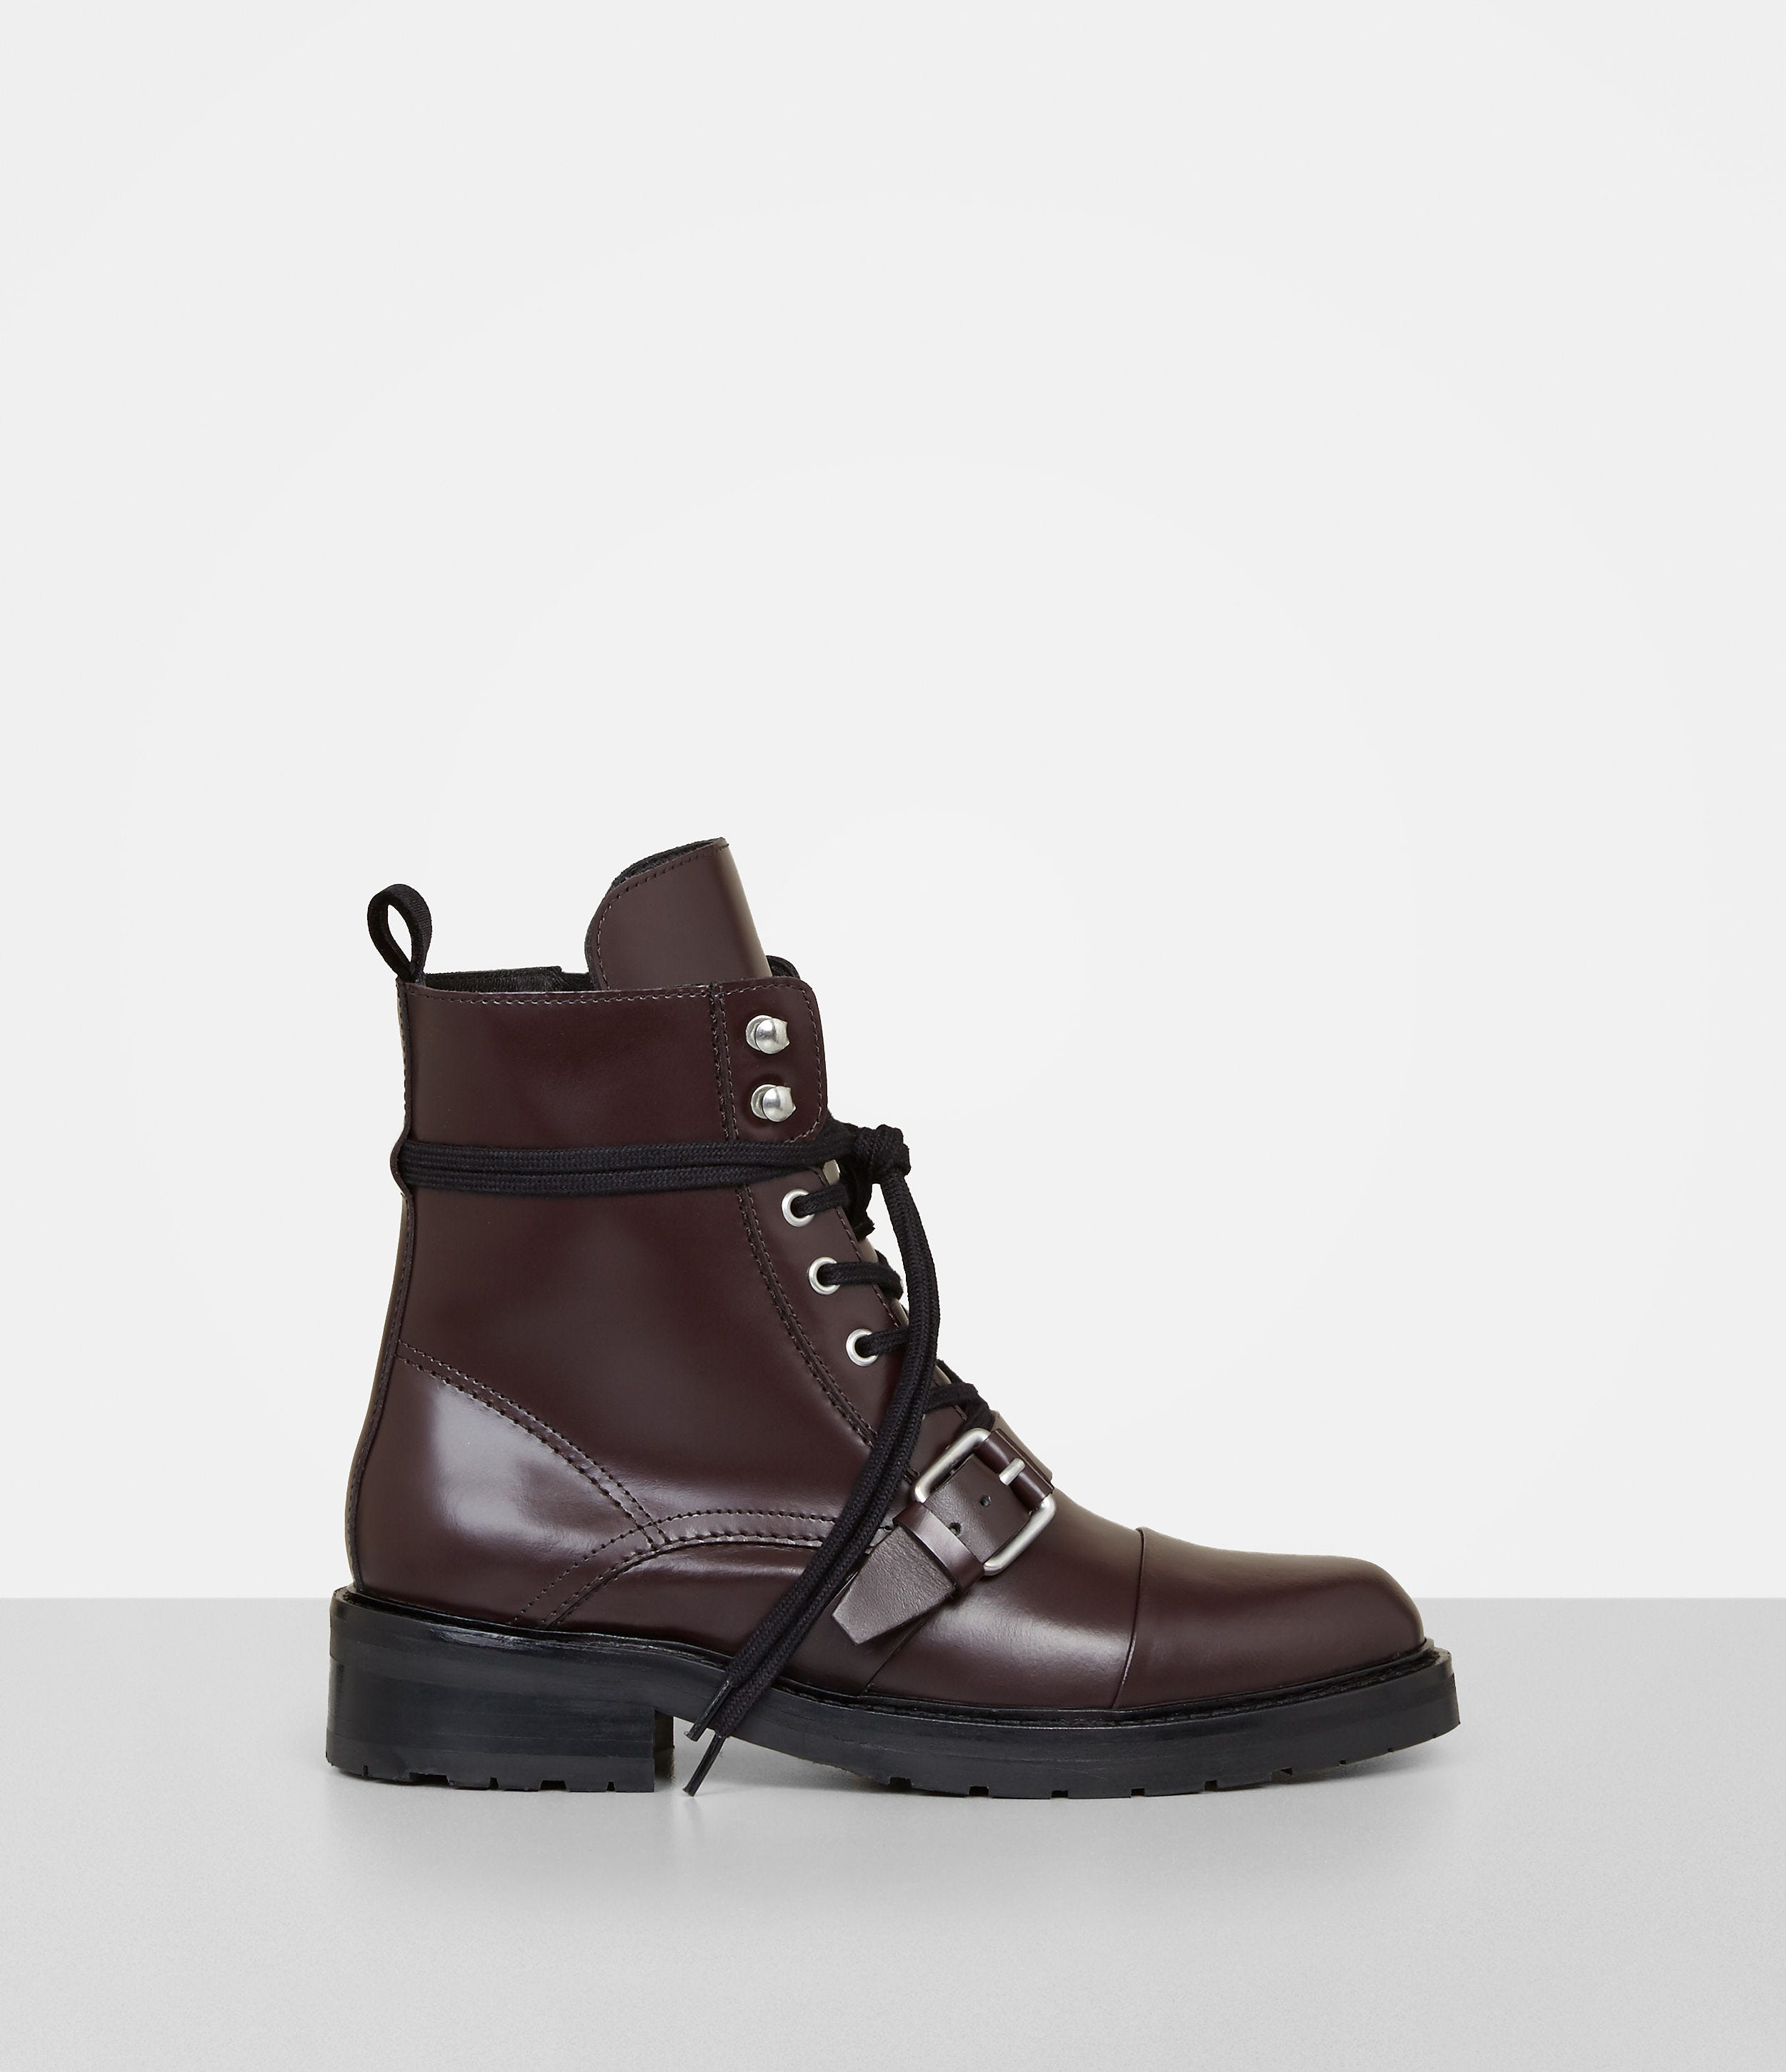 Cute Combat Boot Styles - Military Boots Trend